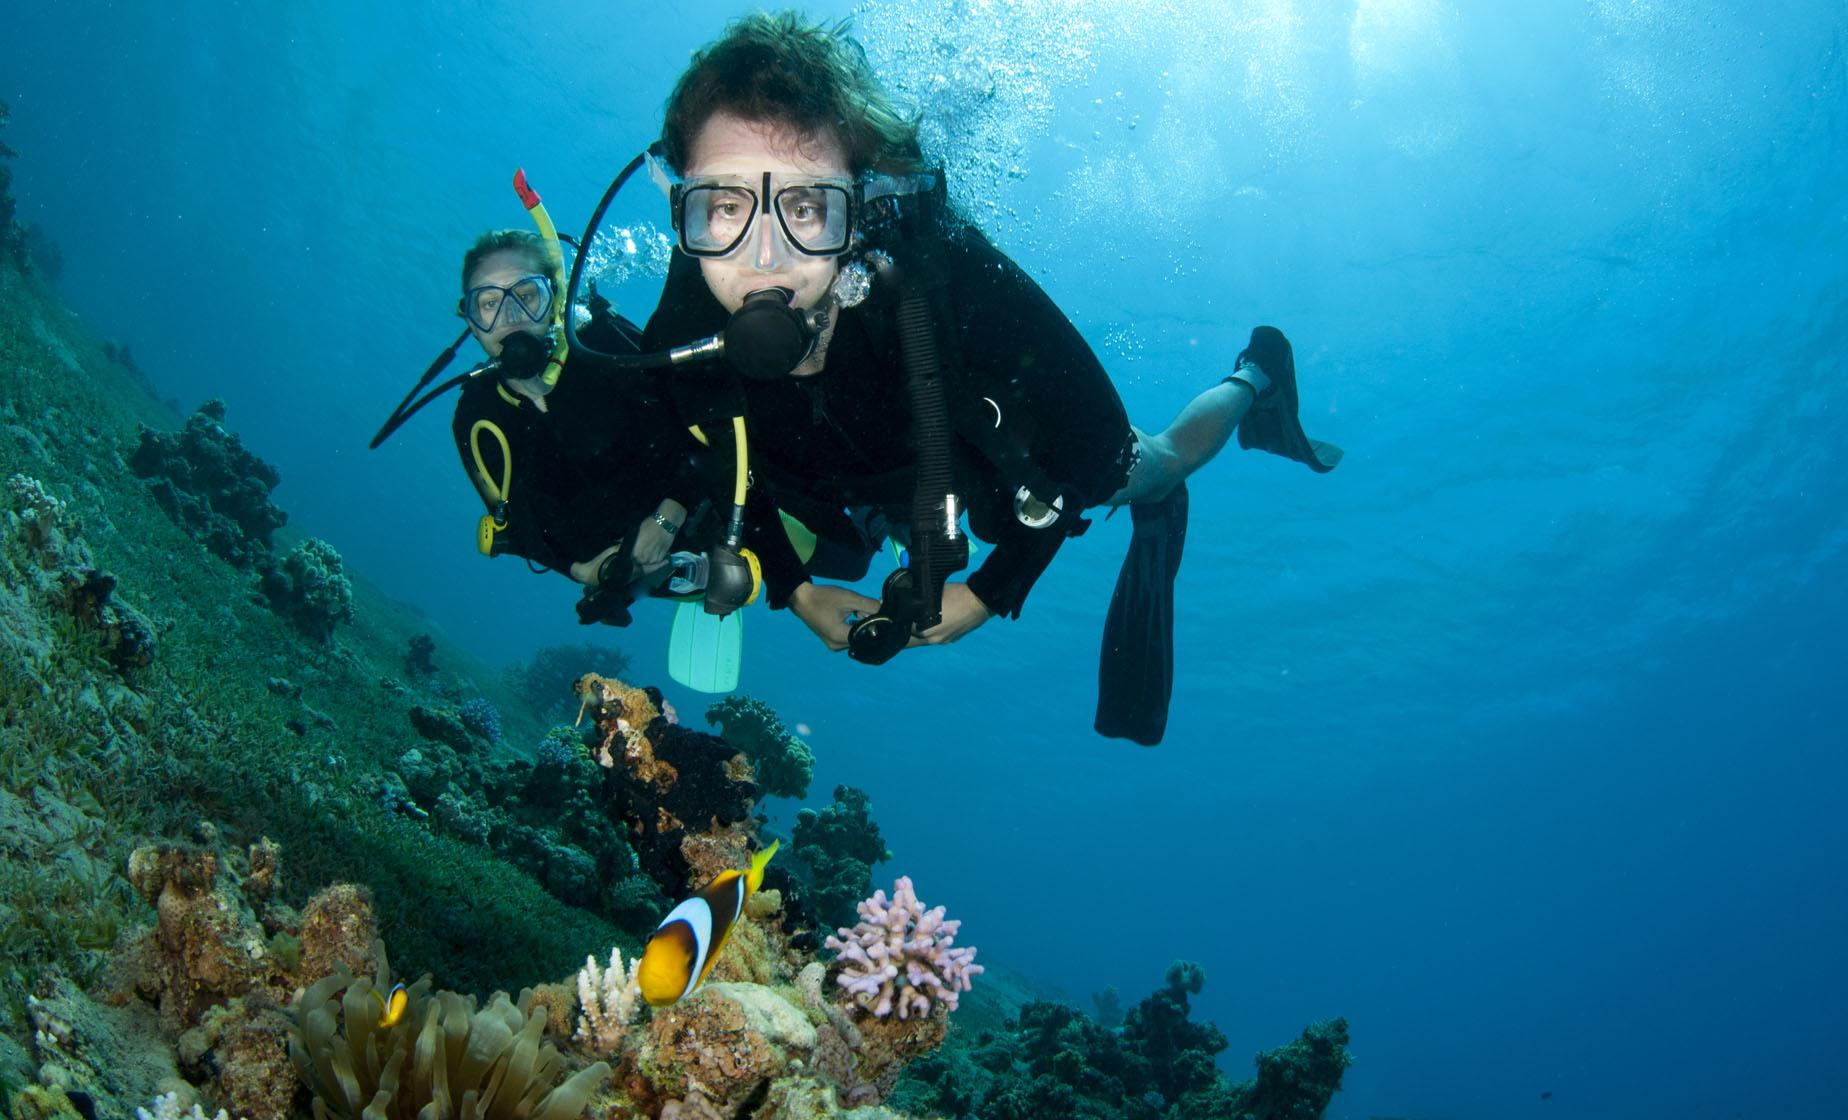 Grenada PADI Discover Scuba Diving Tour (Grand Anse Beach)